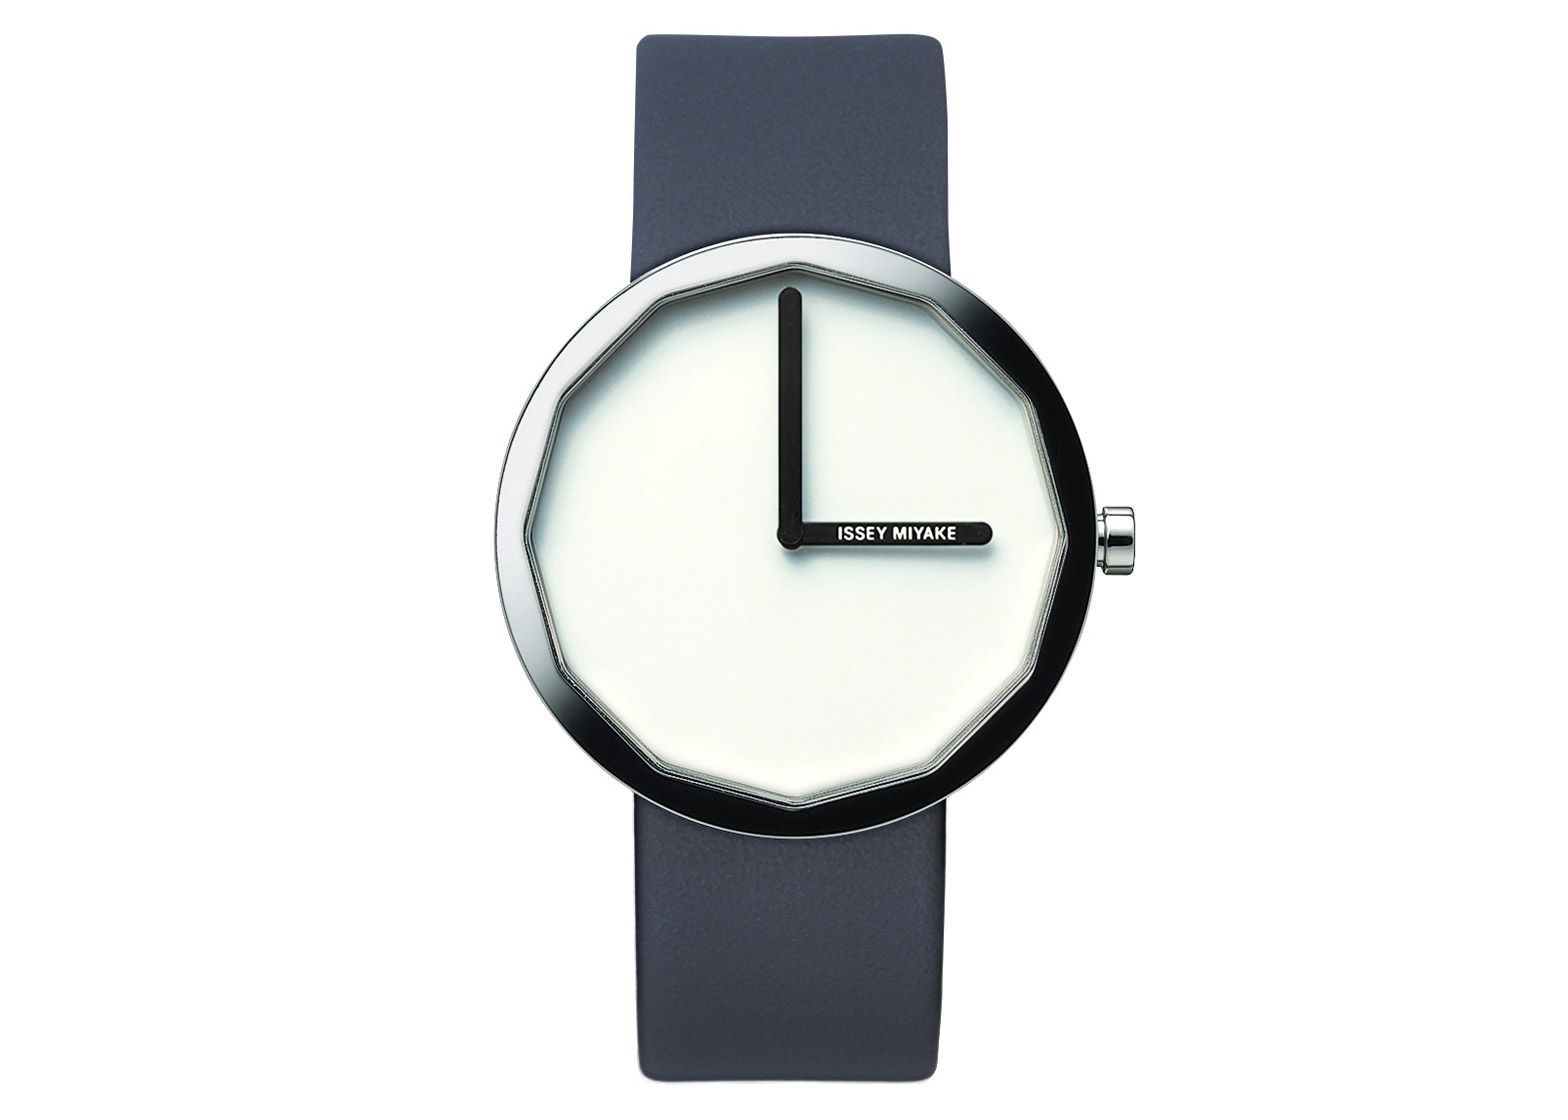 The Twelve watch, designed by Naoto Fukasawa for Issey Miyake